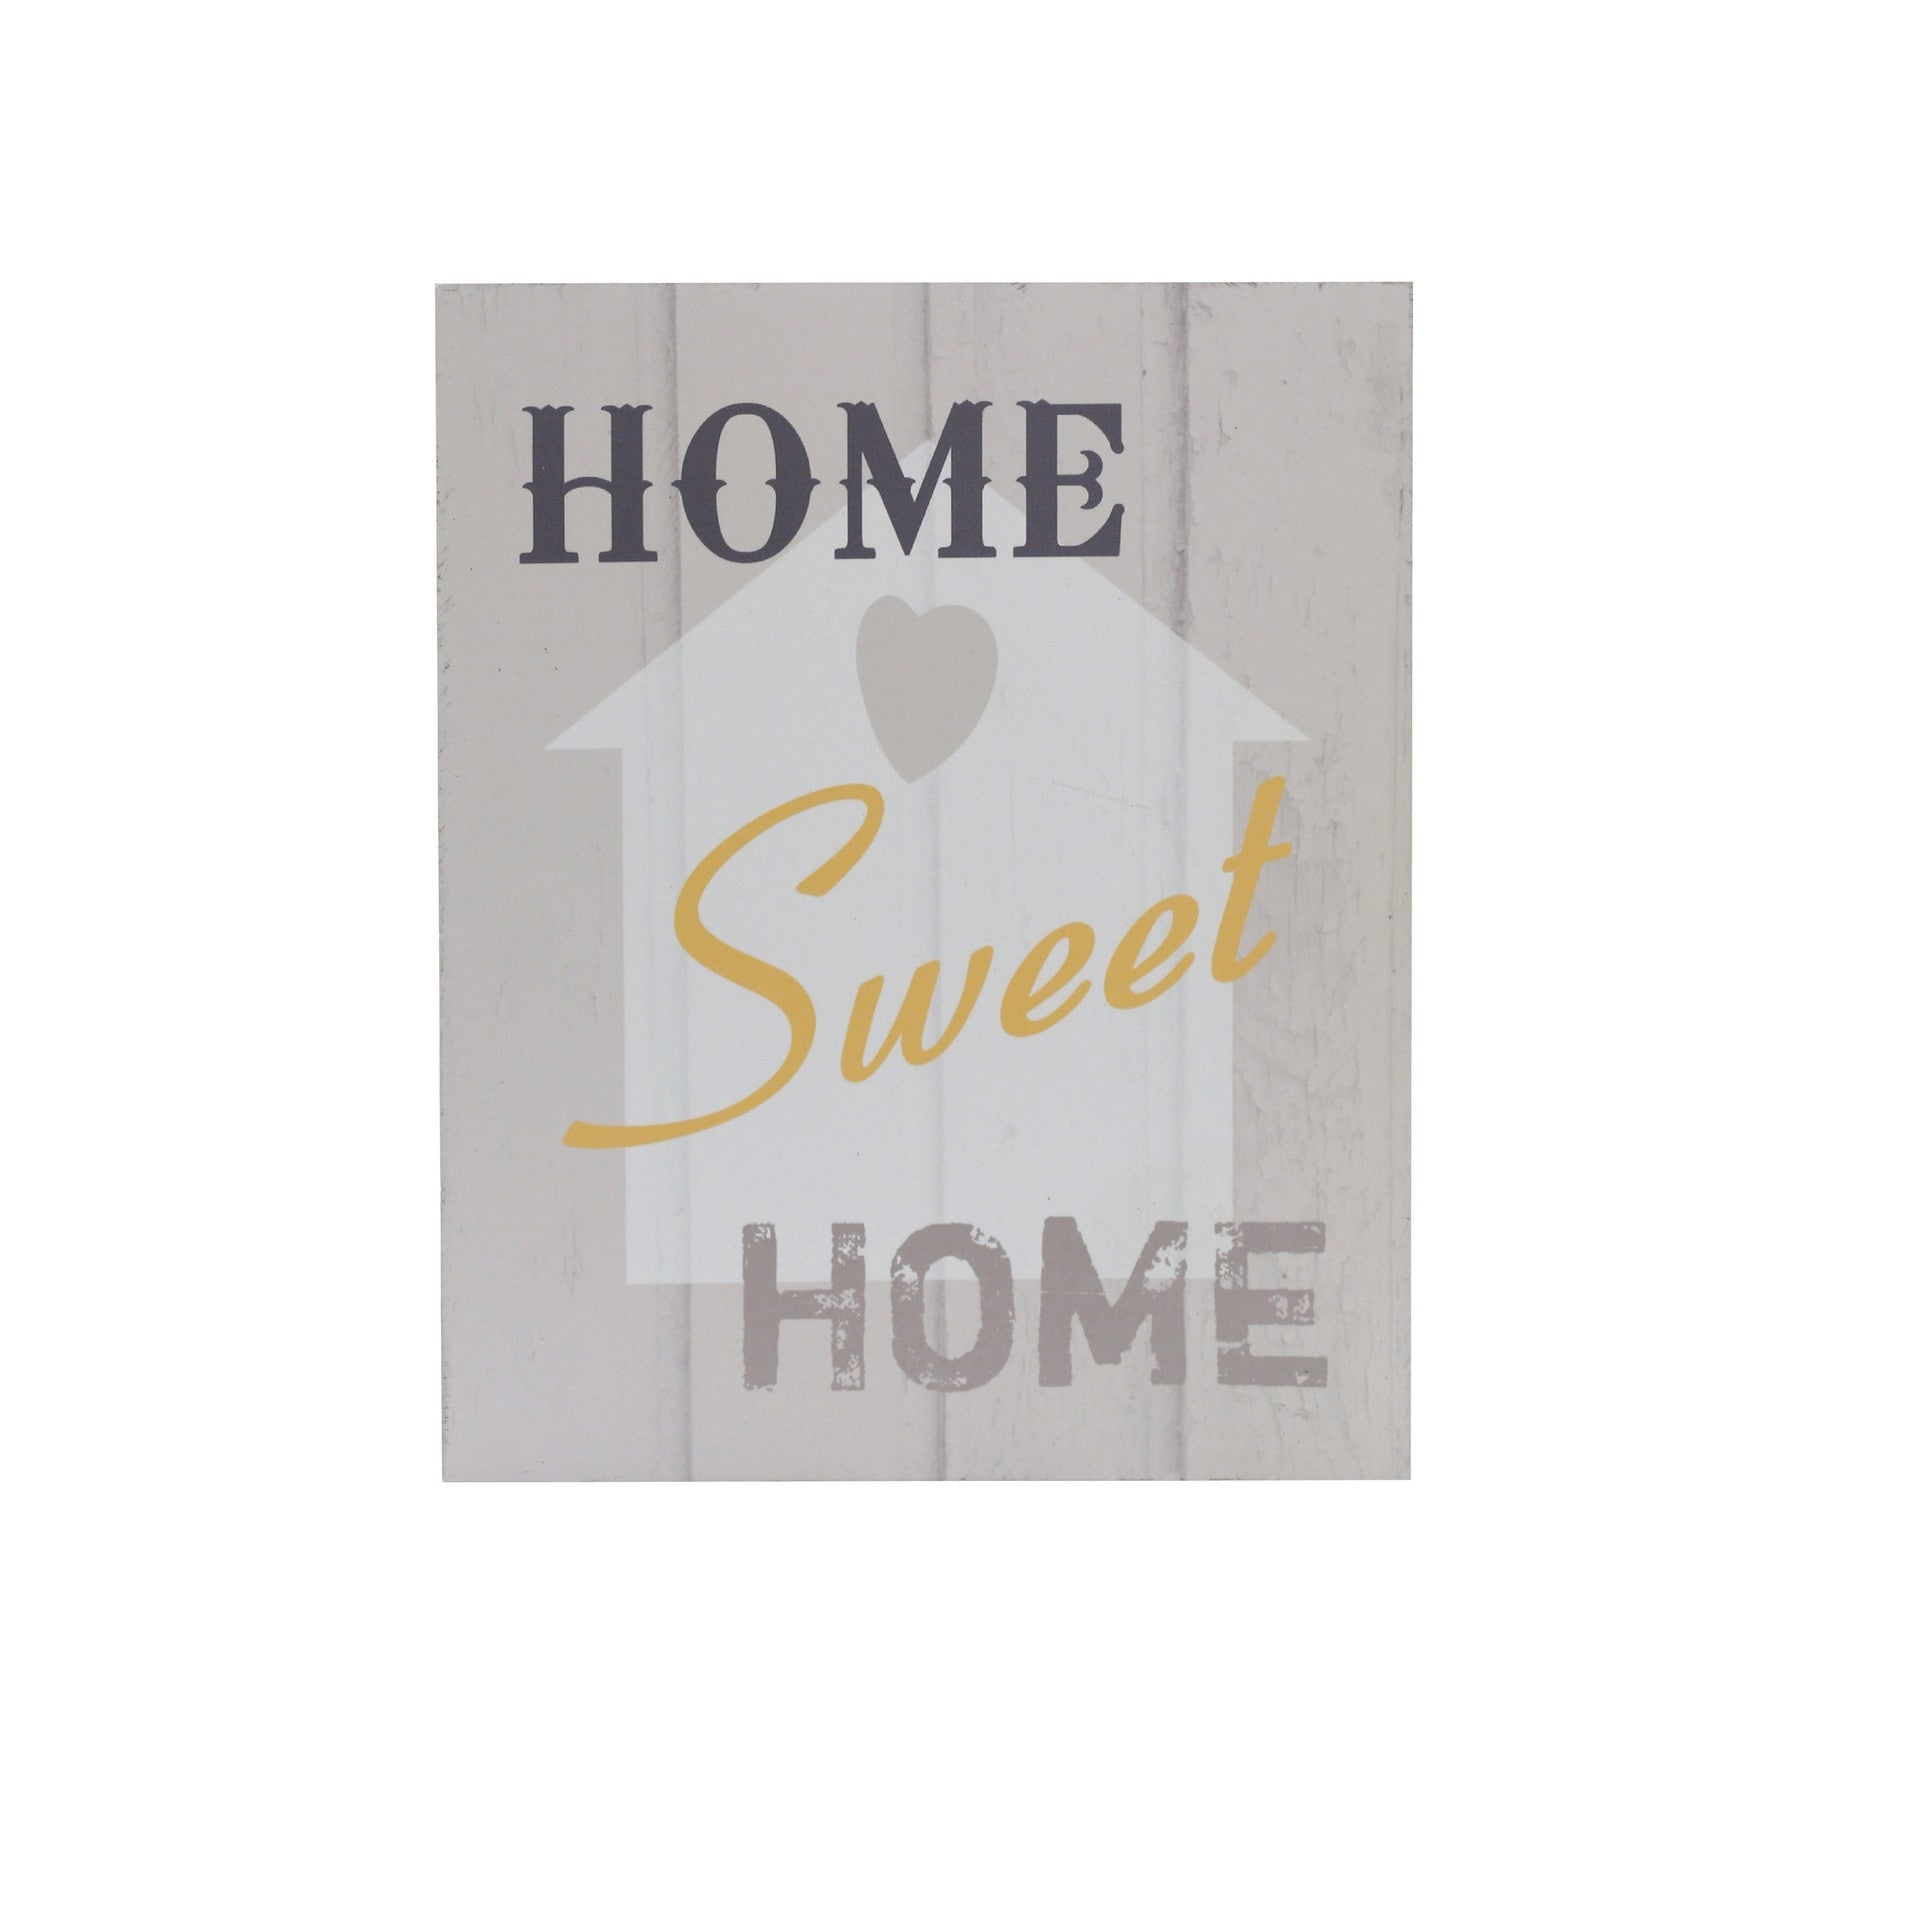 Premier Home Sweet Home Wall Plaque 2800704   Homely Nigeria